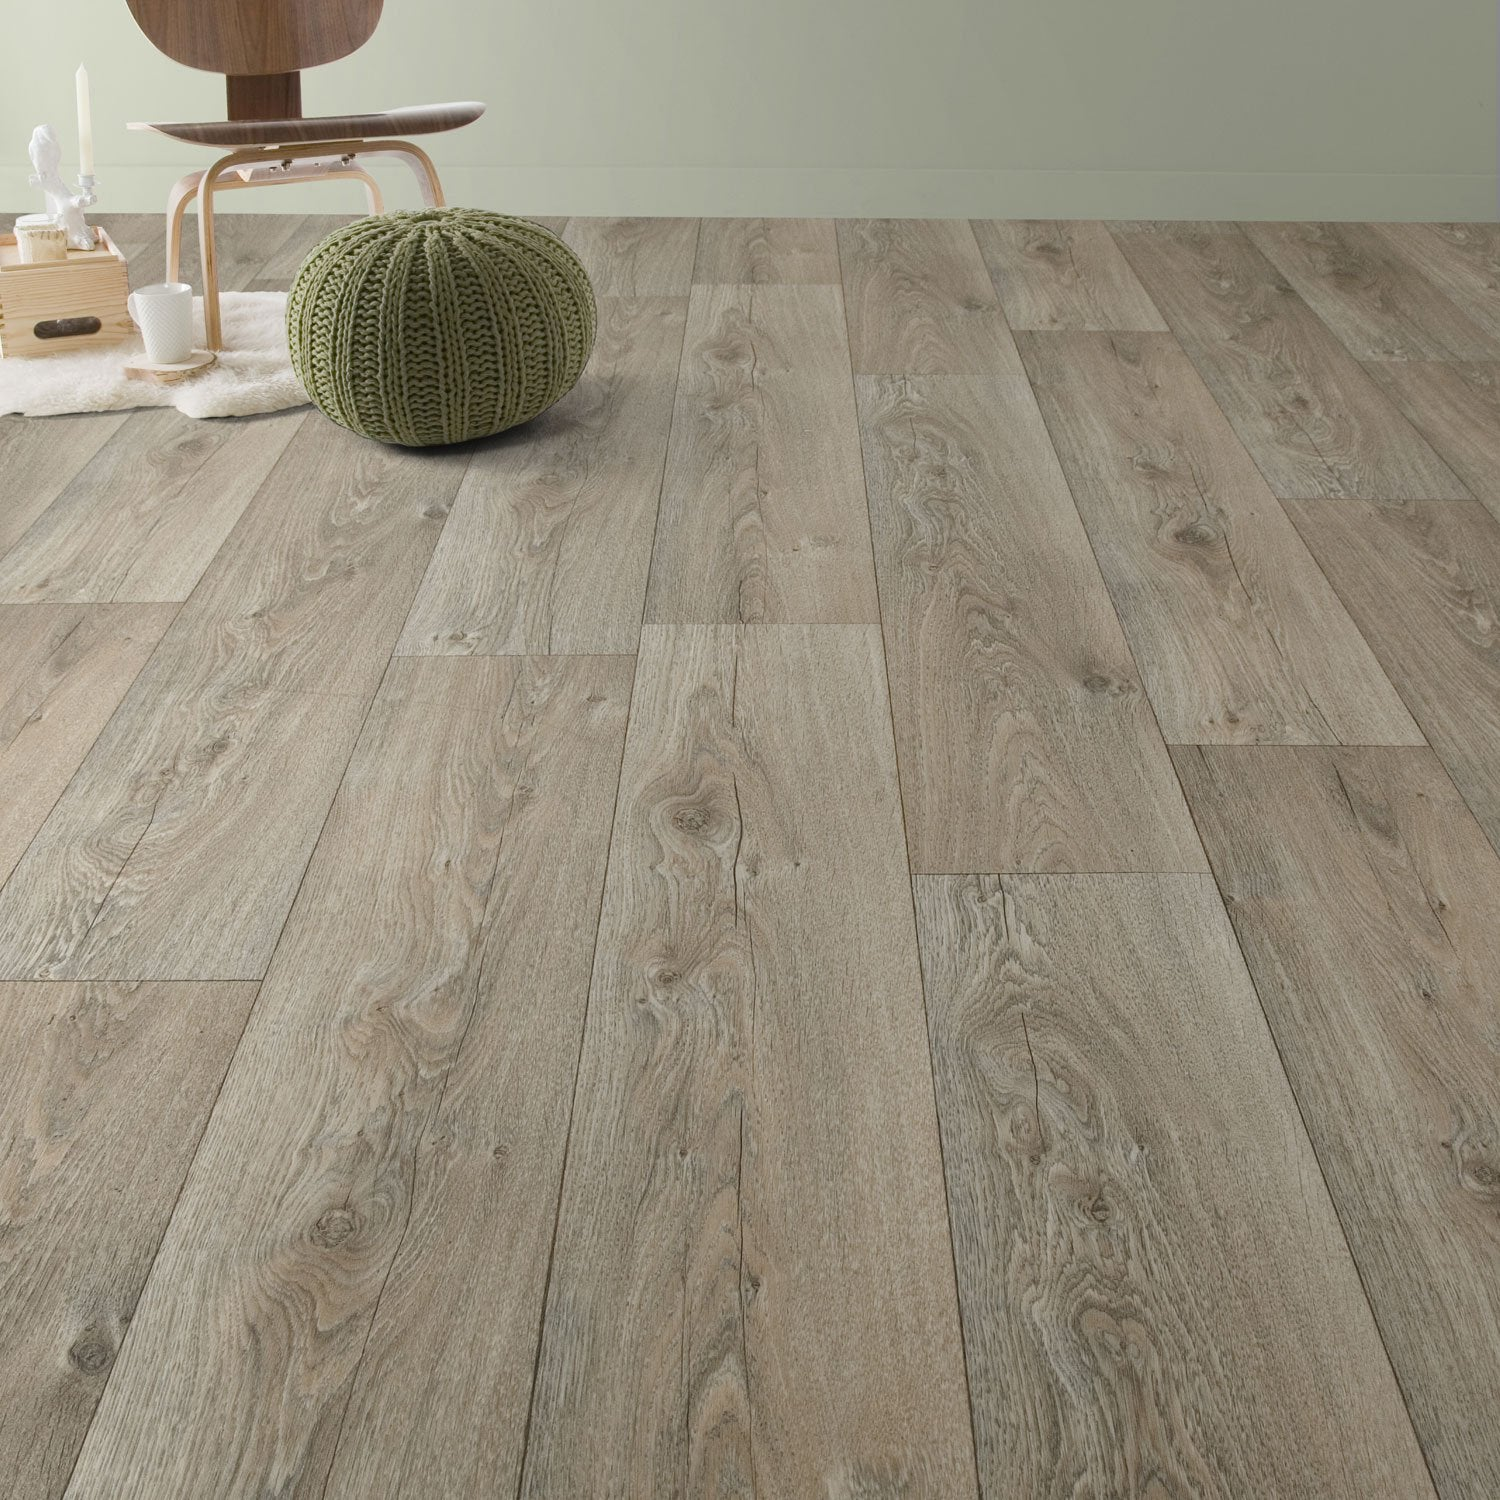 Sol pvc berlin grey l 4 m leroy merlin for Parquet noir leroy merlin